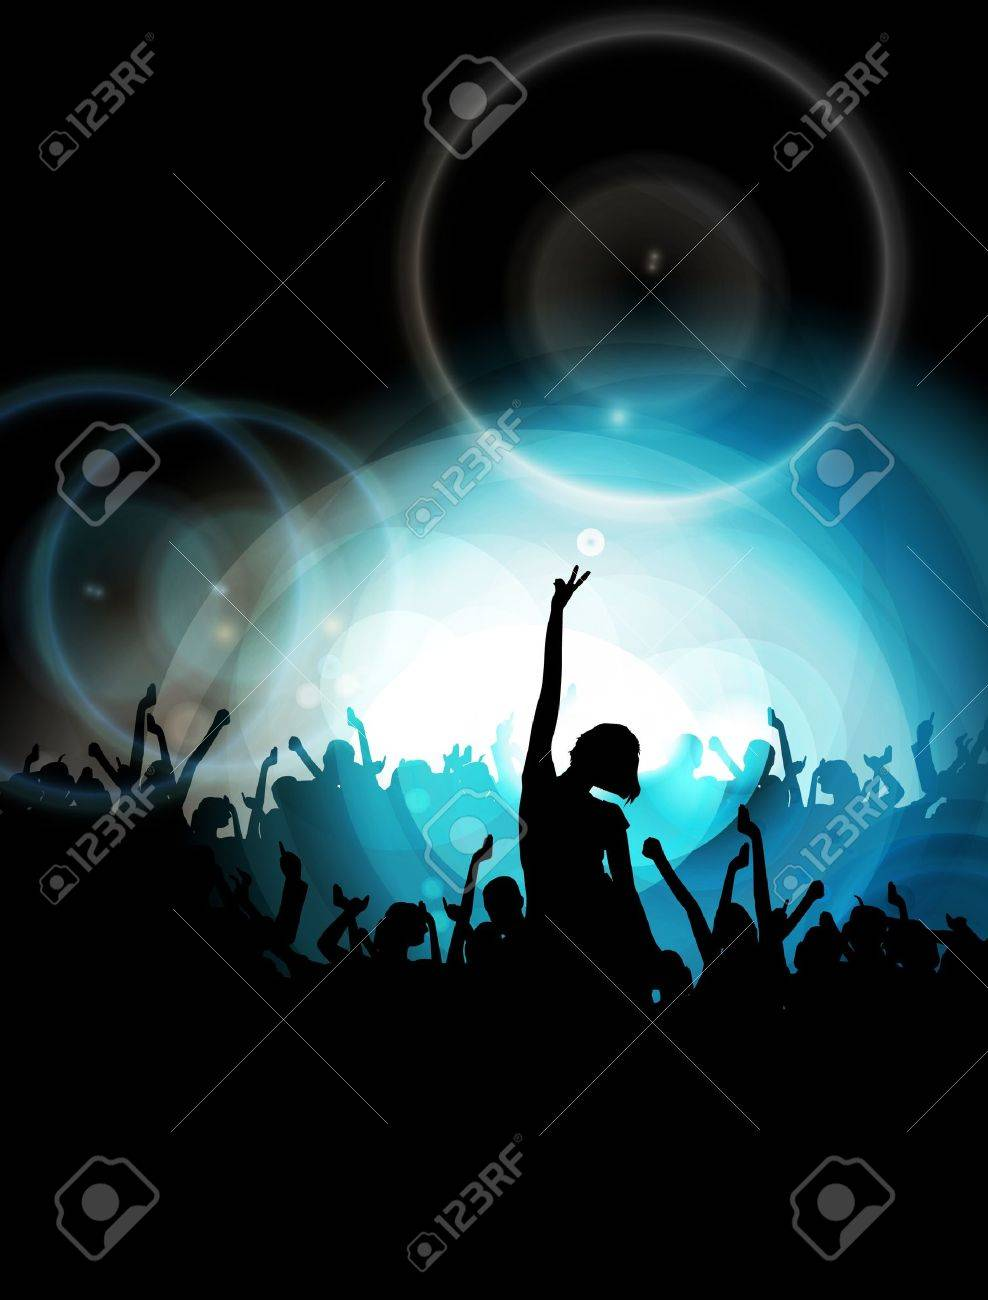 Vector party background Stock Vector - 13155591